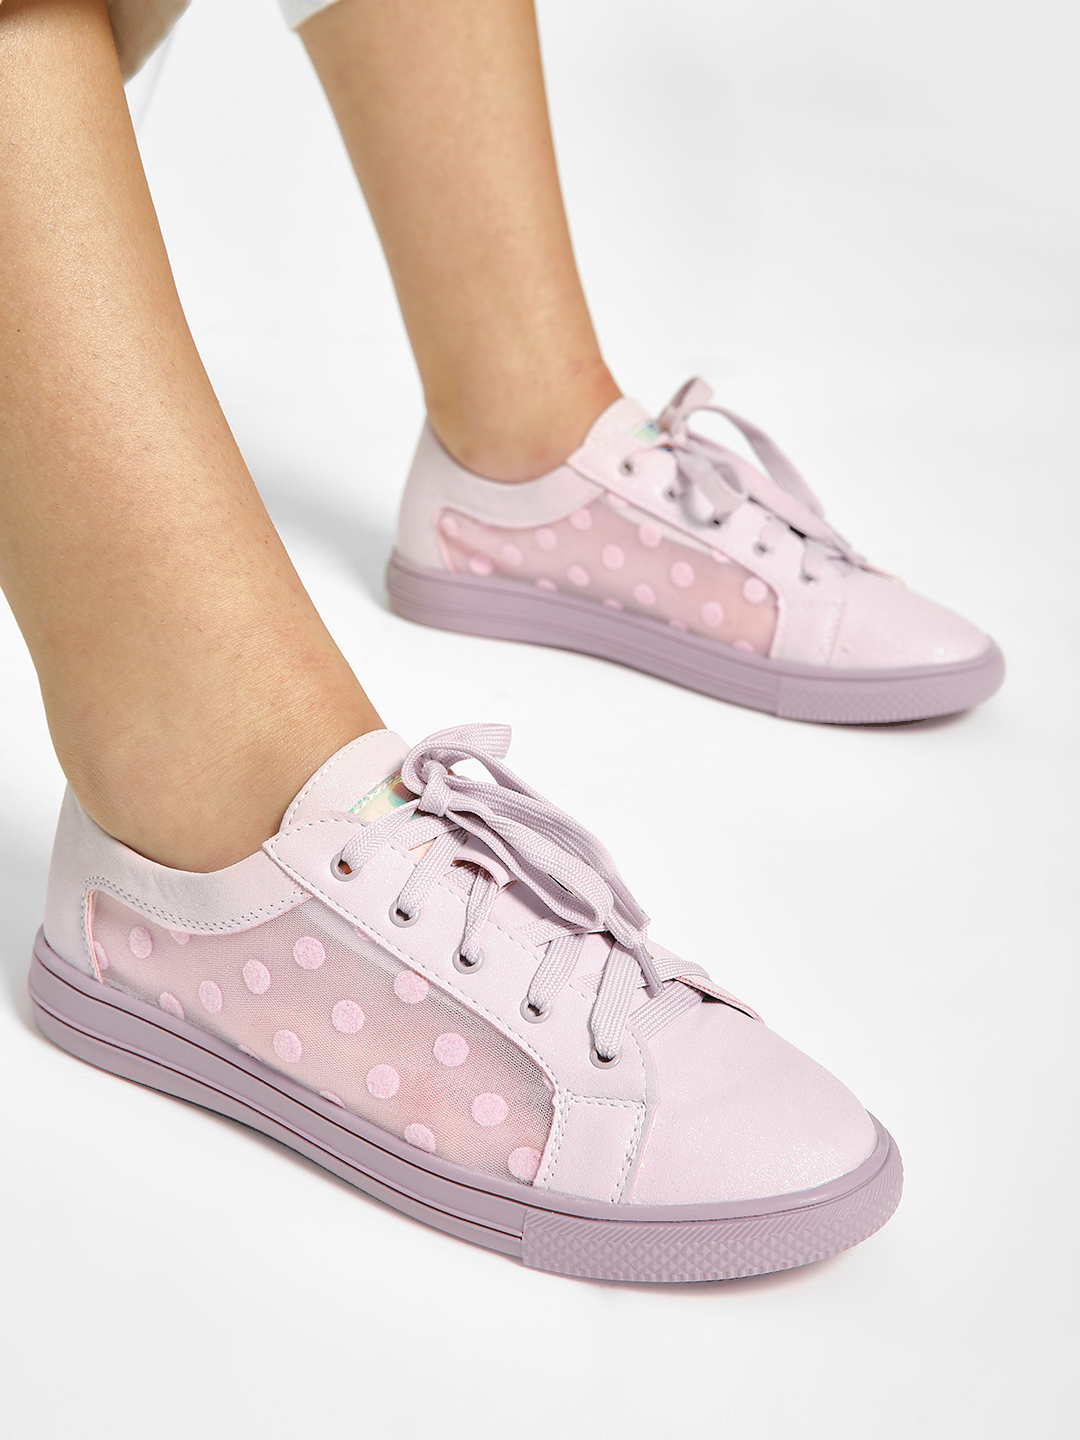 My Foot Couture Purple Polka Dot Mesh Panel Sneakers 1